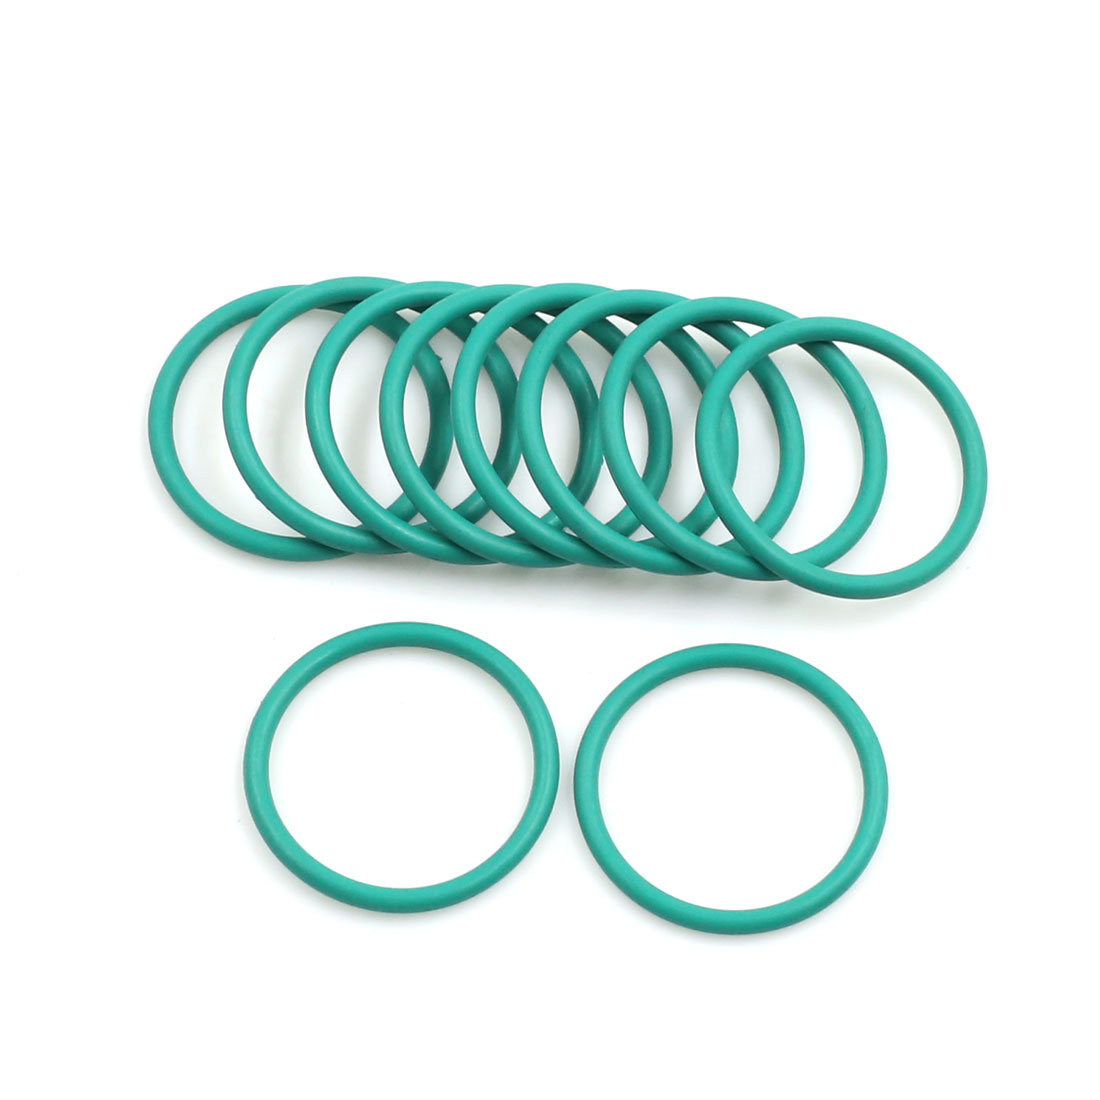 10pcs Green Universal FKM O-Ring Sealing Gasket Washer for Car 24mm x 2mm